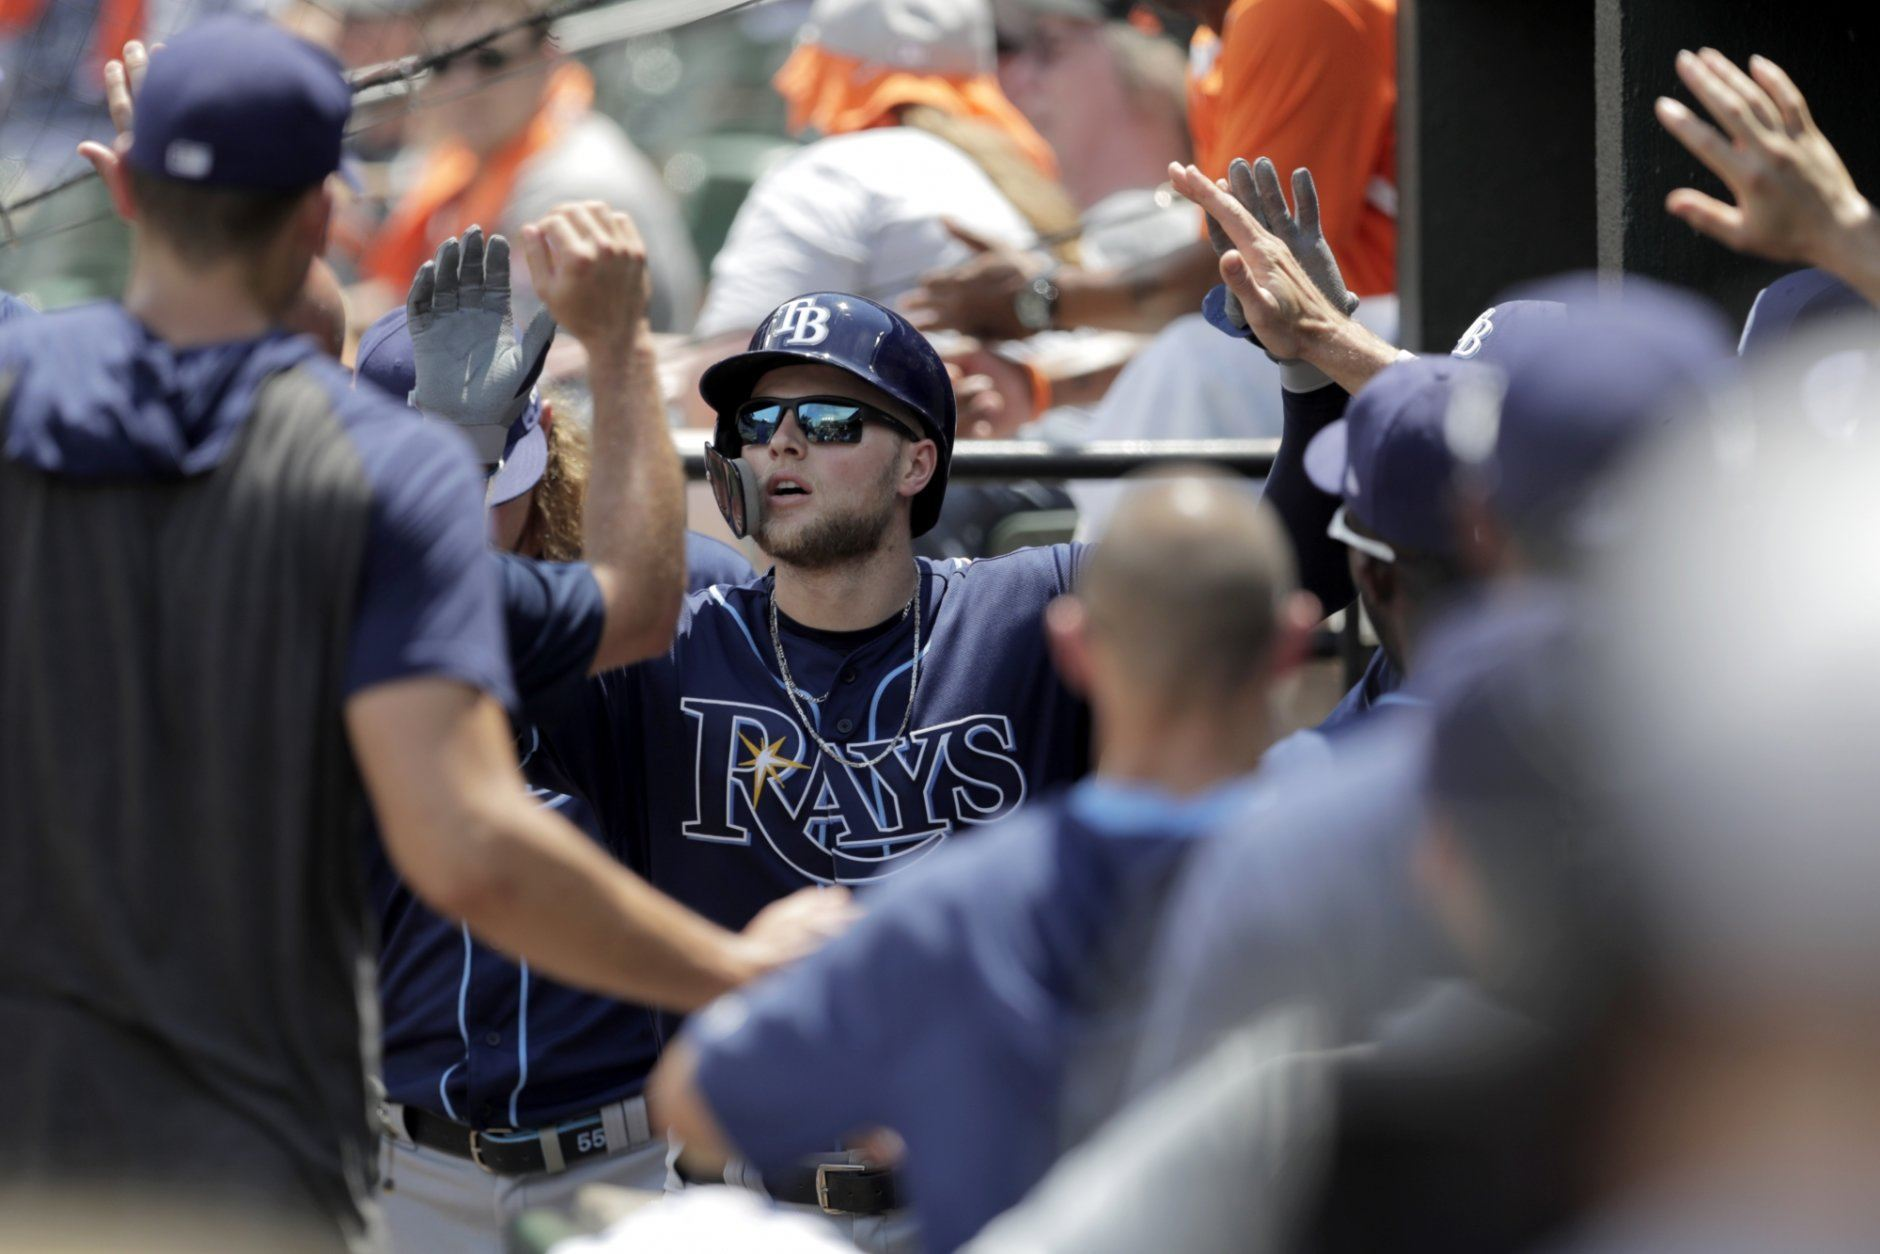 Tampa Bay Rays' Austin Meadows is greeted in the dugout after hitting a solo home run off Baltimore Orioles starting pitcher Thomas Eshelman during the third inning of a baseball game, Sunday, July 14, 2019, in Baltimore. (AP Photo/Julio Cortez)